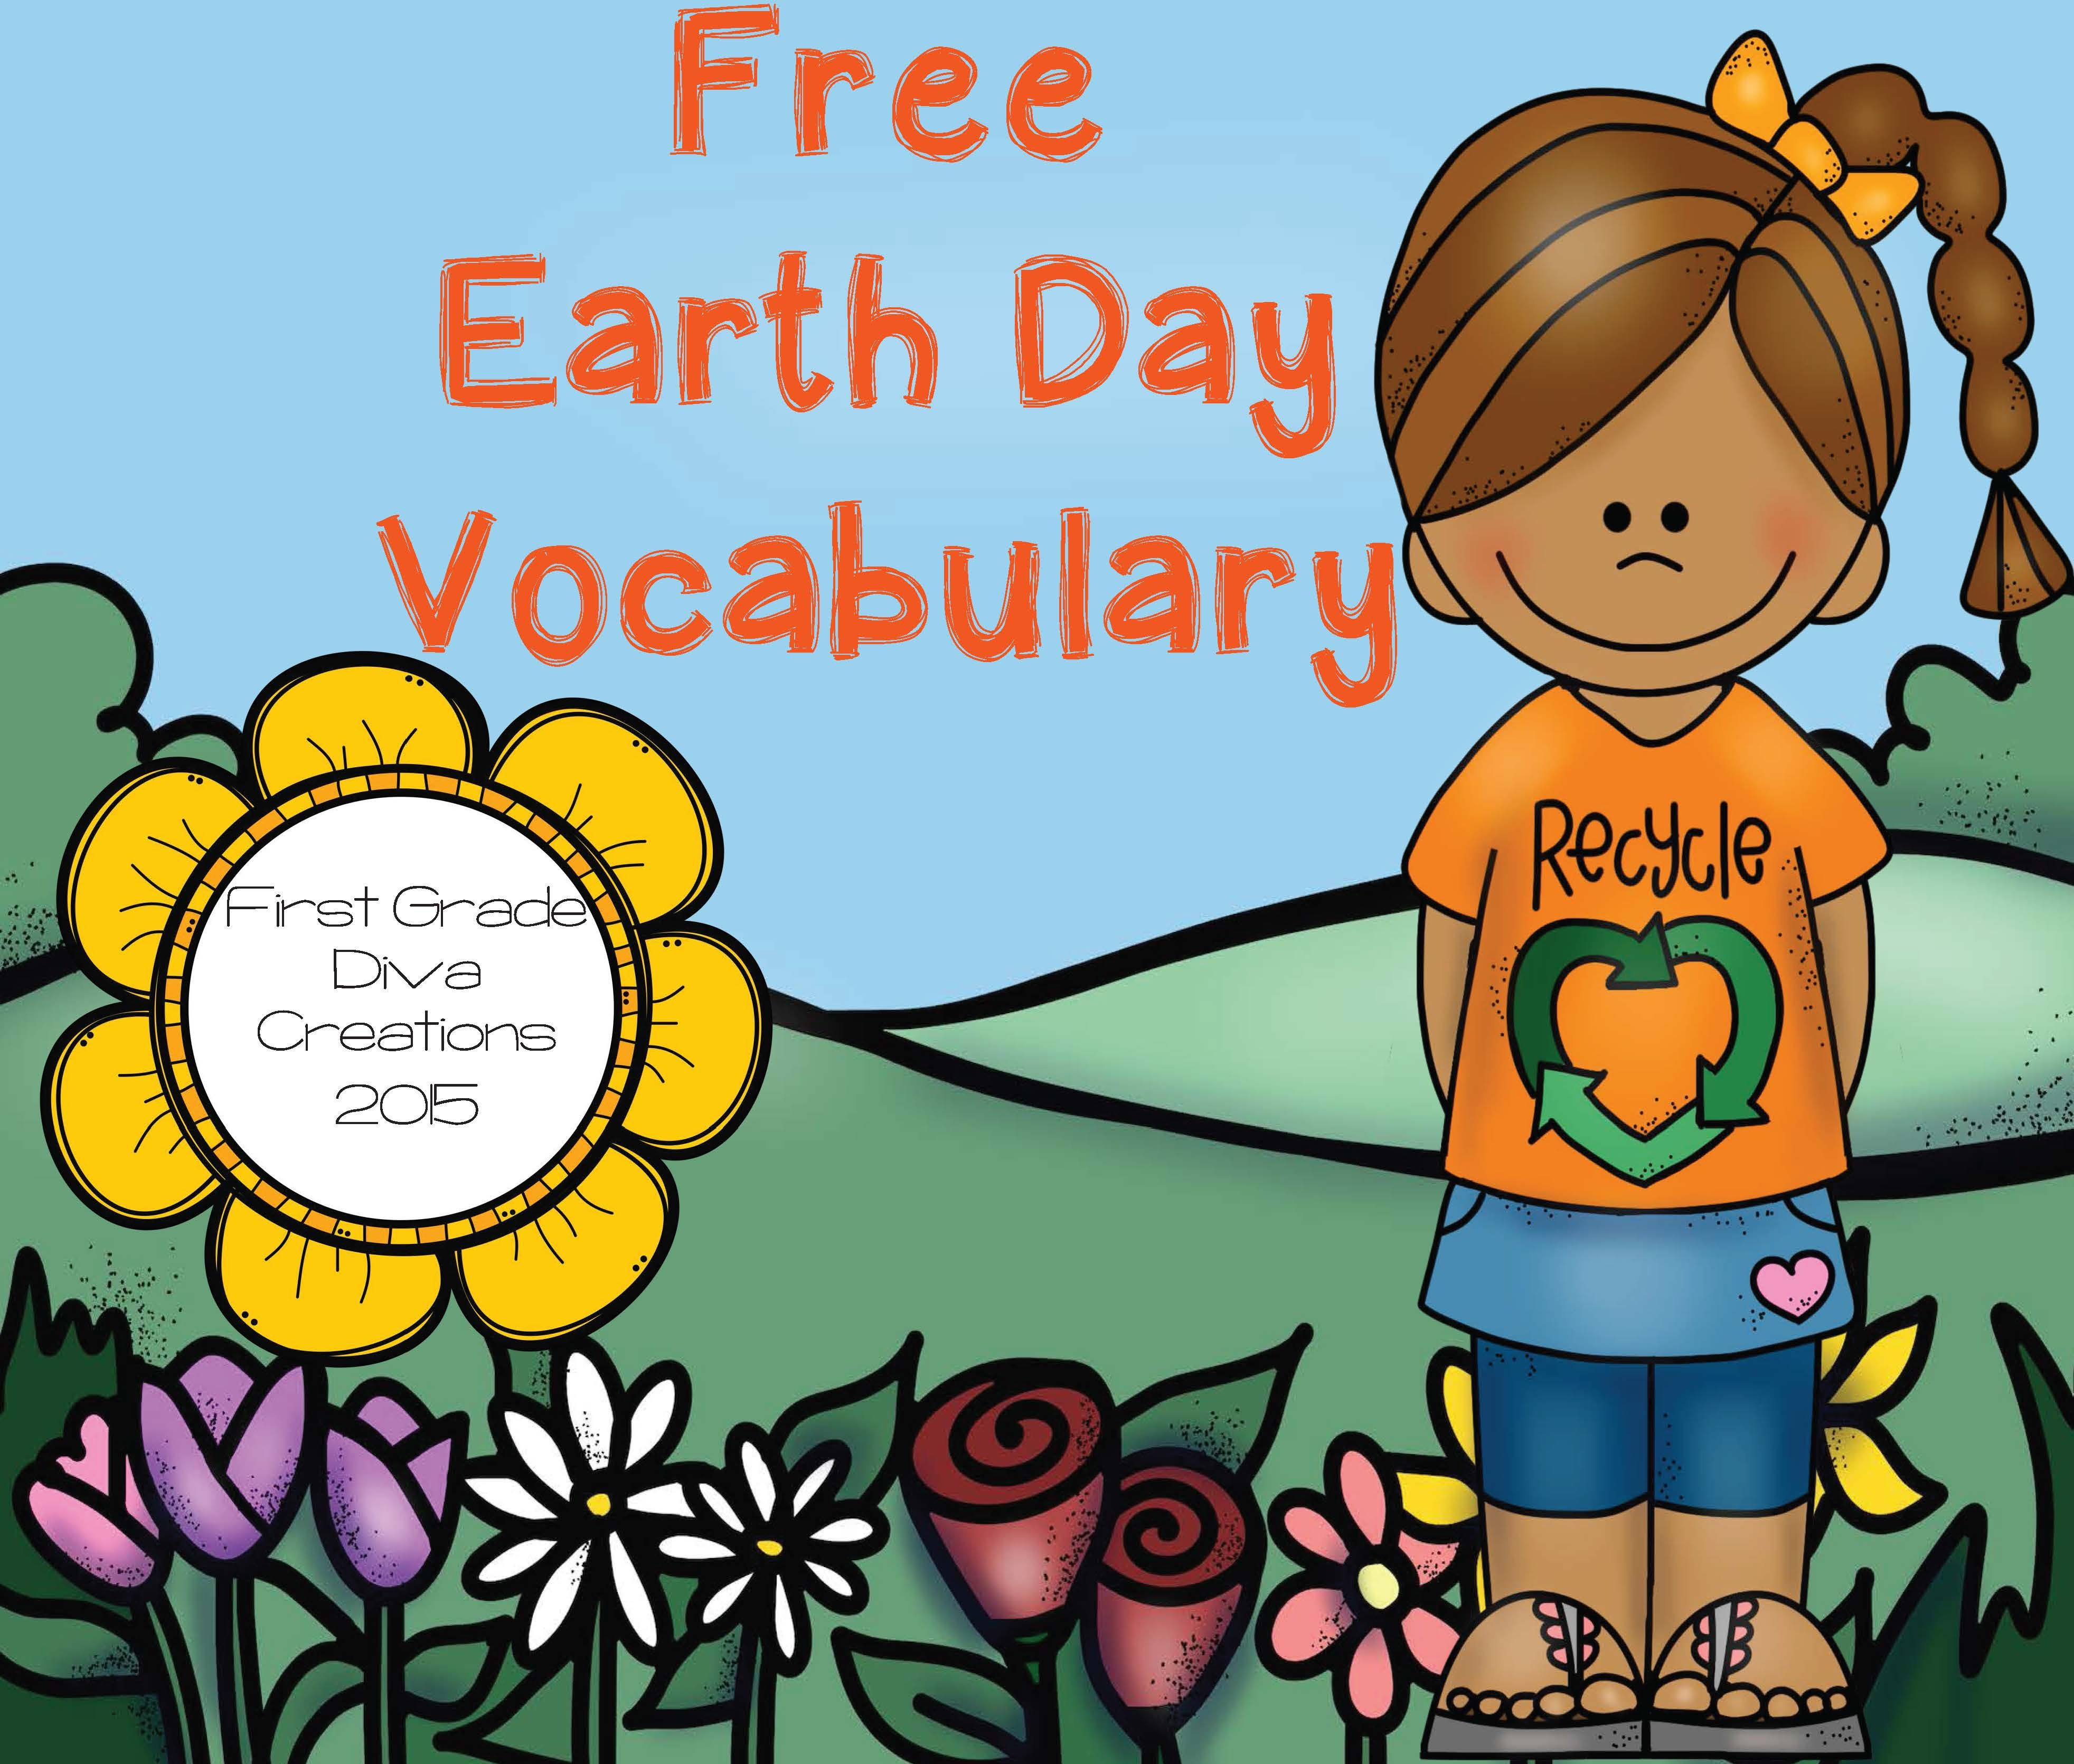 Earth Day Free Activities Vocabulary Resource